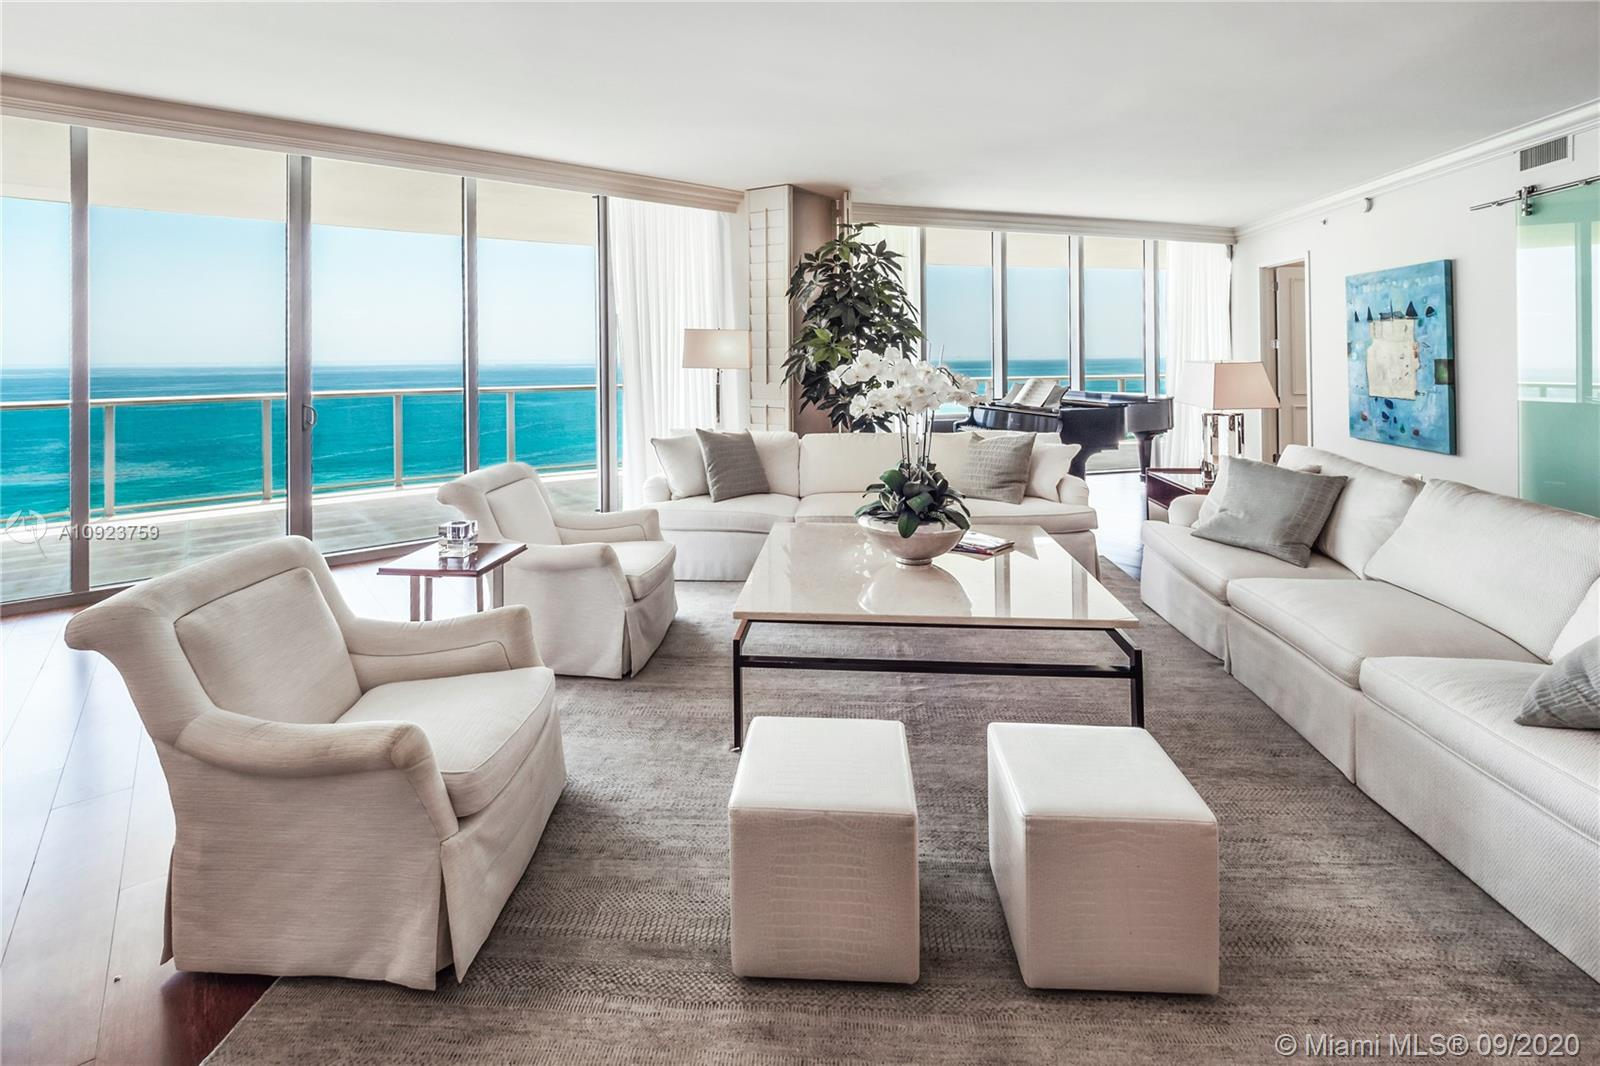 9703 Collins Ave, Unit #1900 Luxury Real Estate